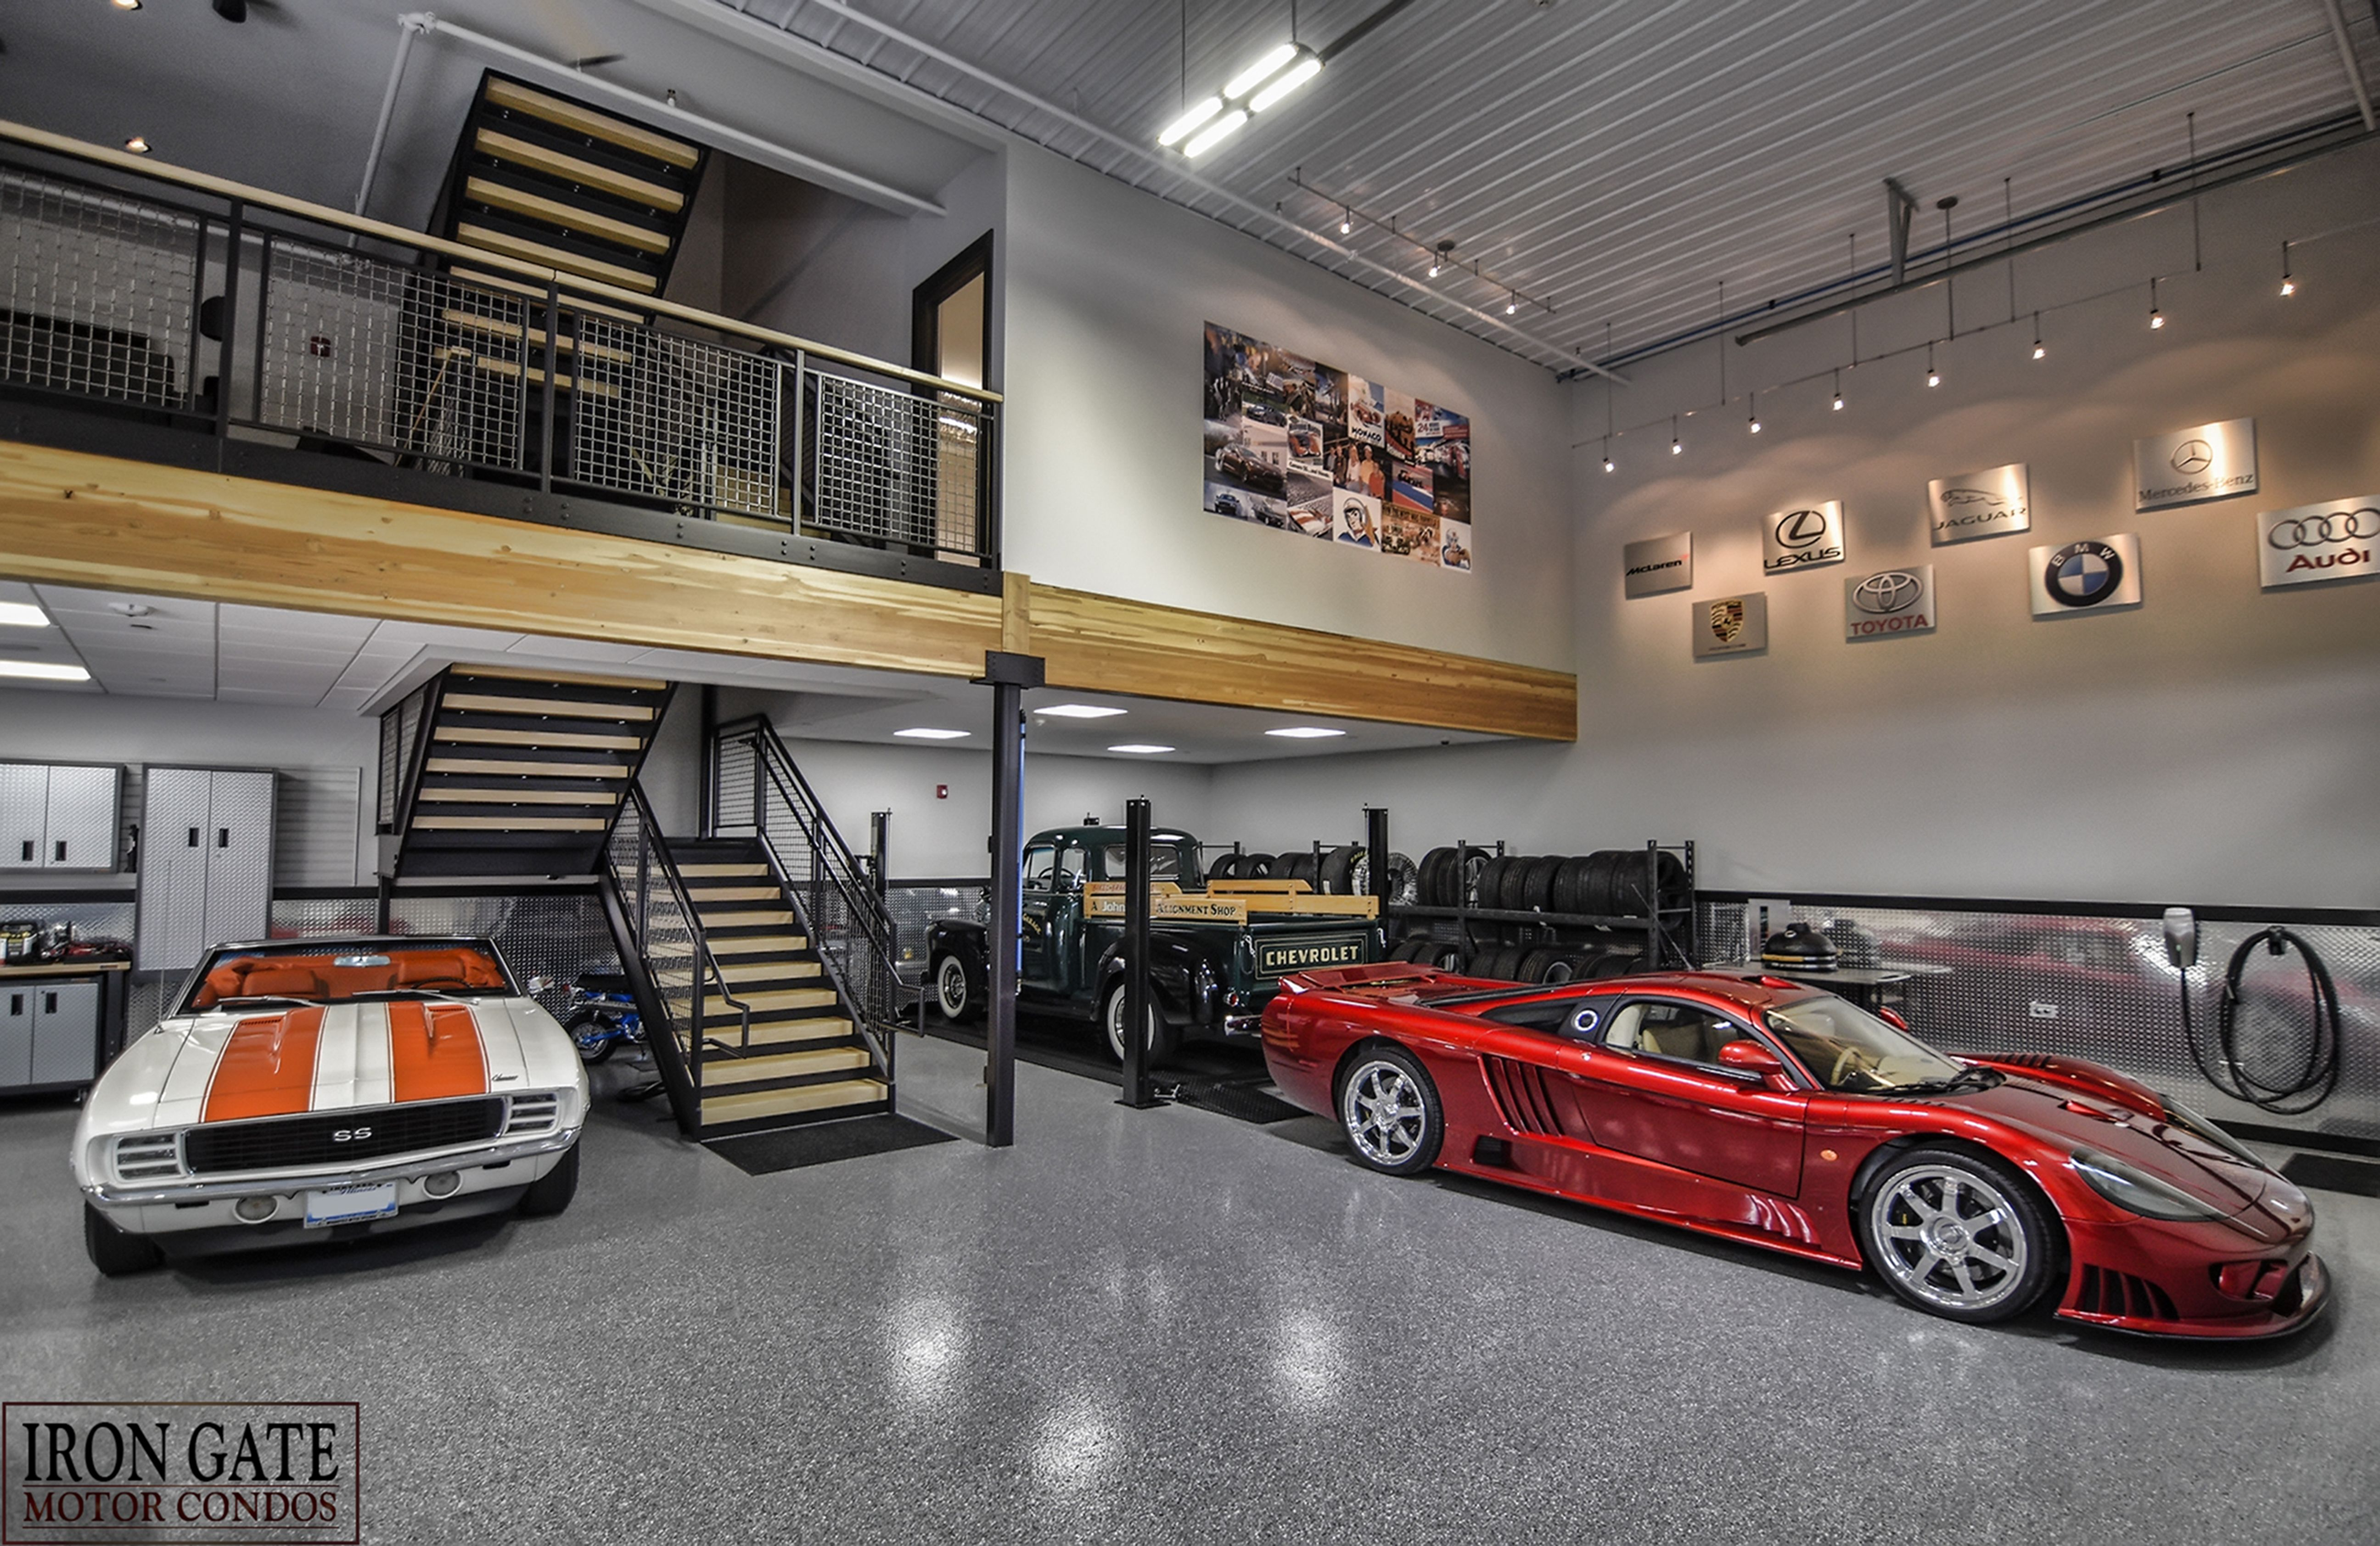 Car condos are the new man caves